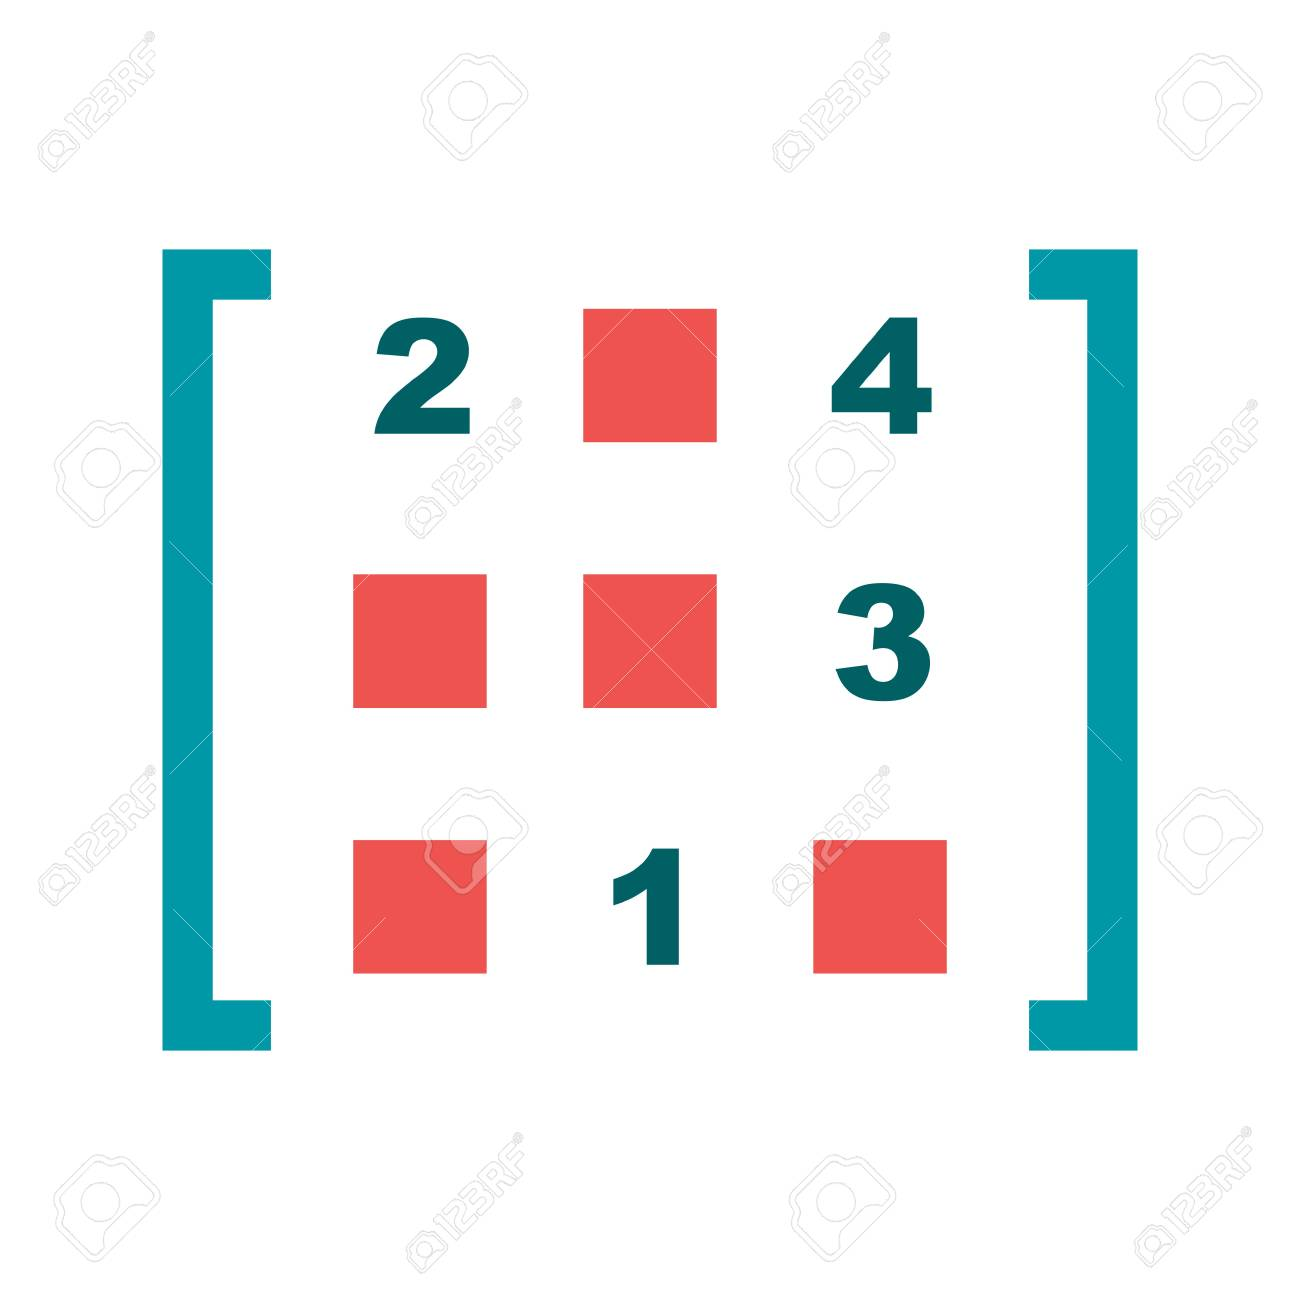 Formula, algebra, maths icon vector image  Can also be used for